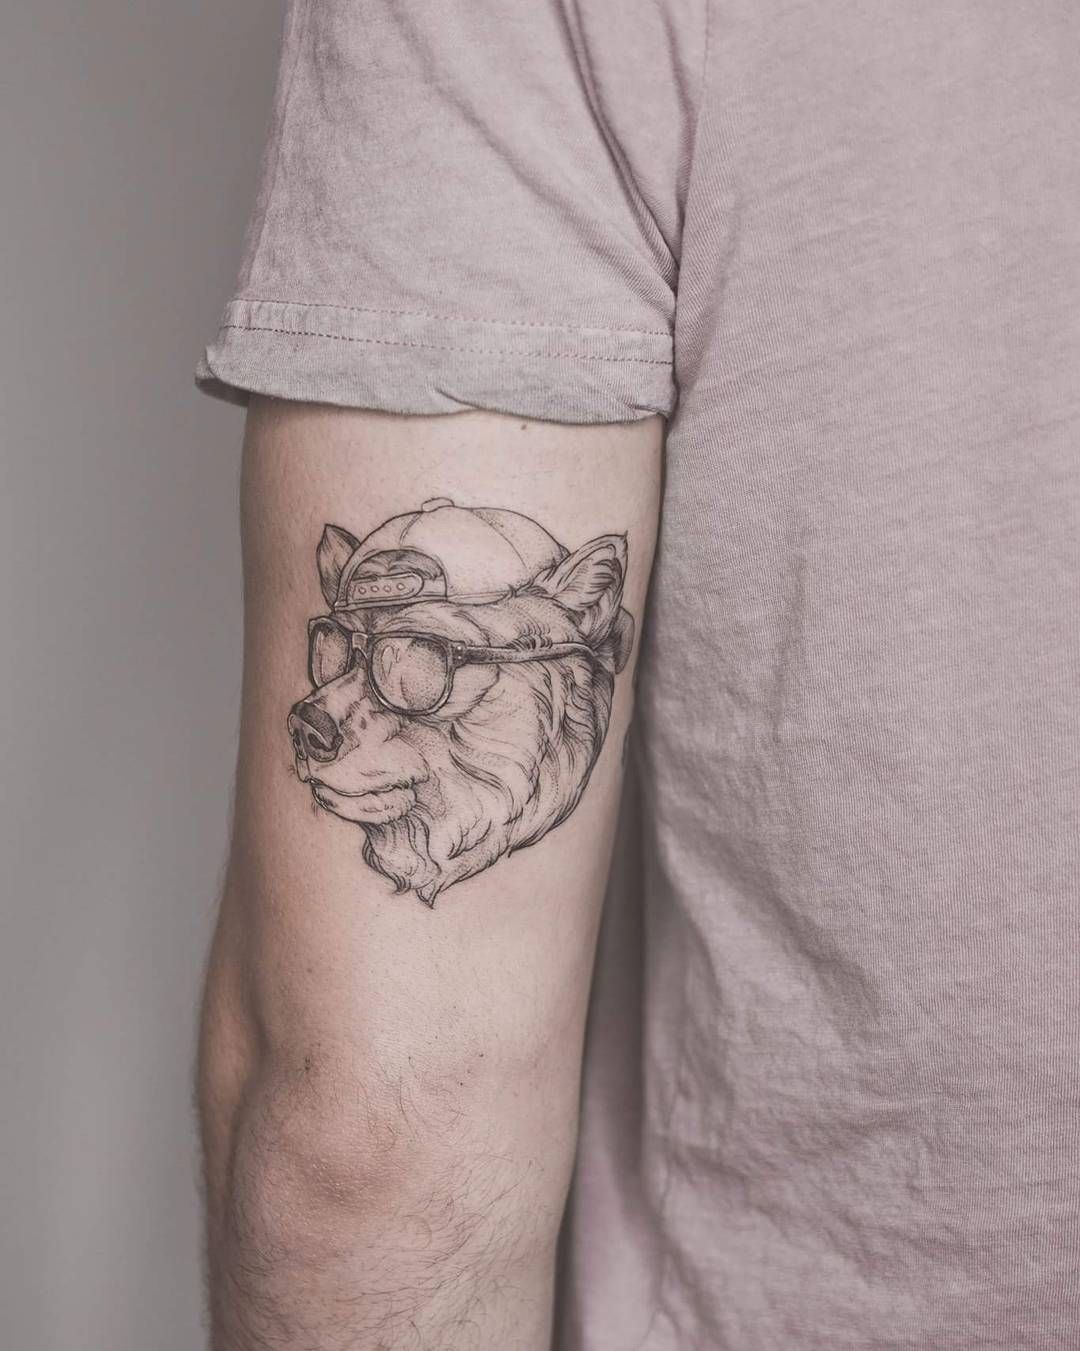 Tattoo ideas for men little cool guy bear man from the other day a little warped as he wraps